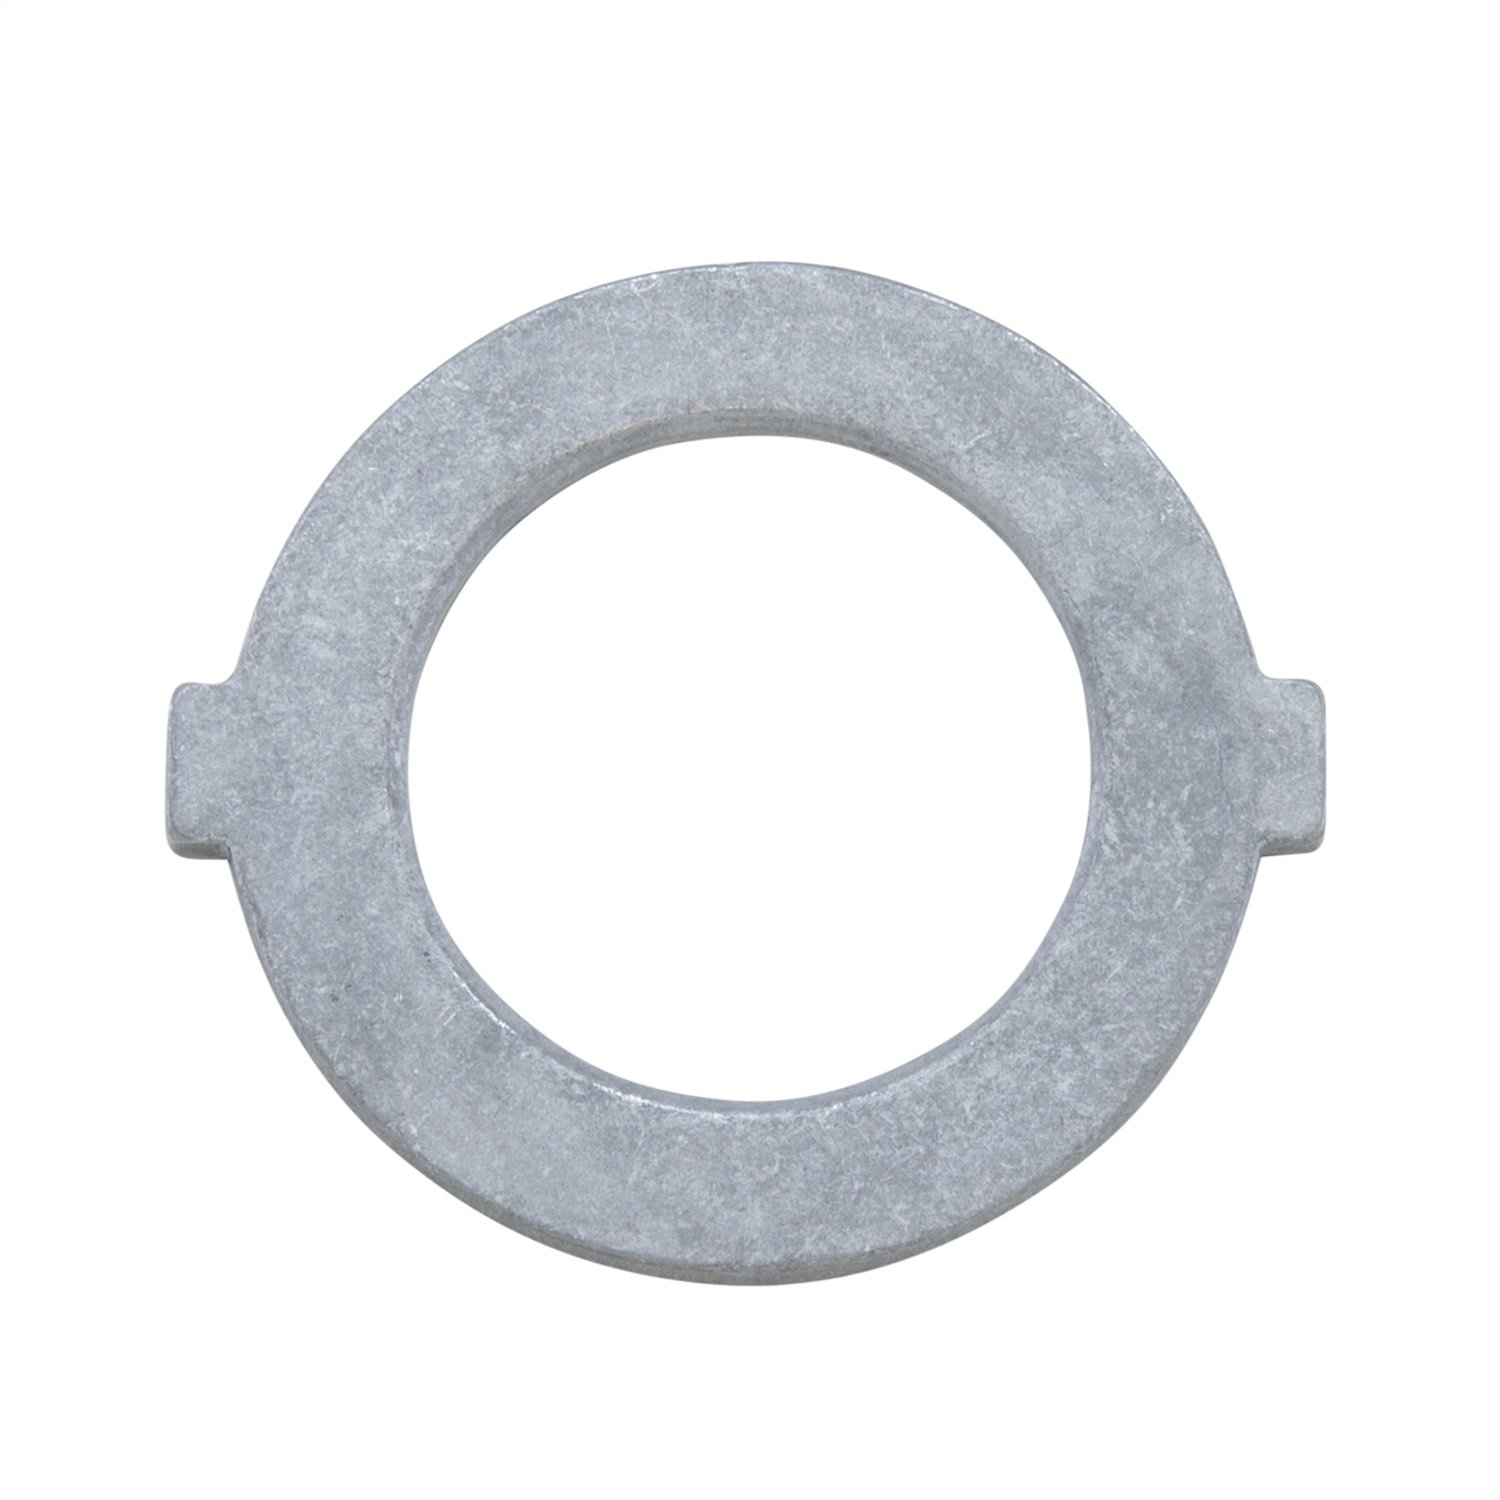 Yukon (YSPTW-066) Stub Shaft Thrust Washer for GM 9.25'' IFS Differential